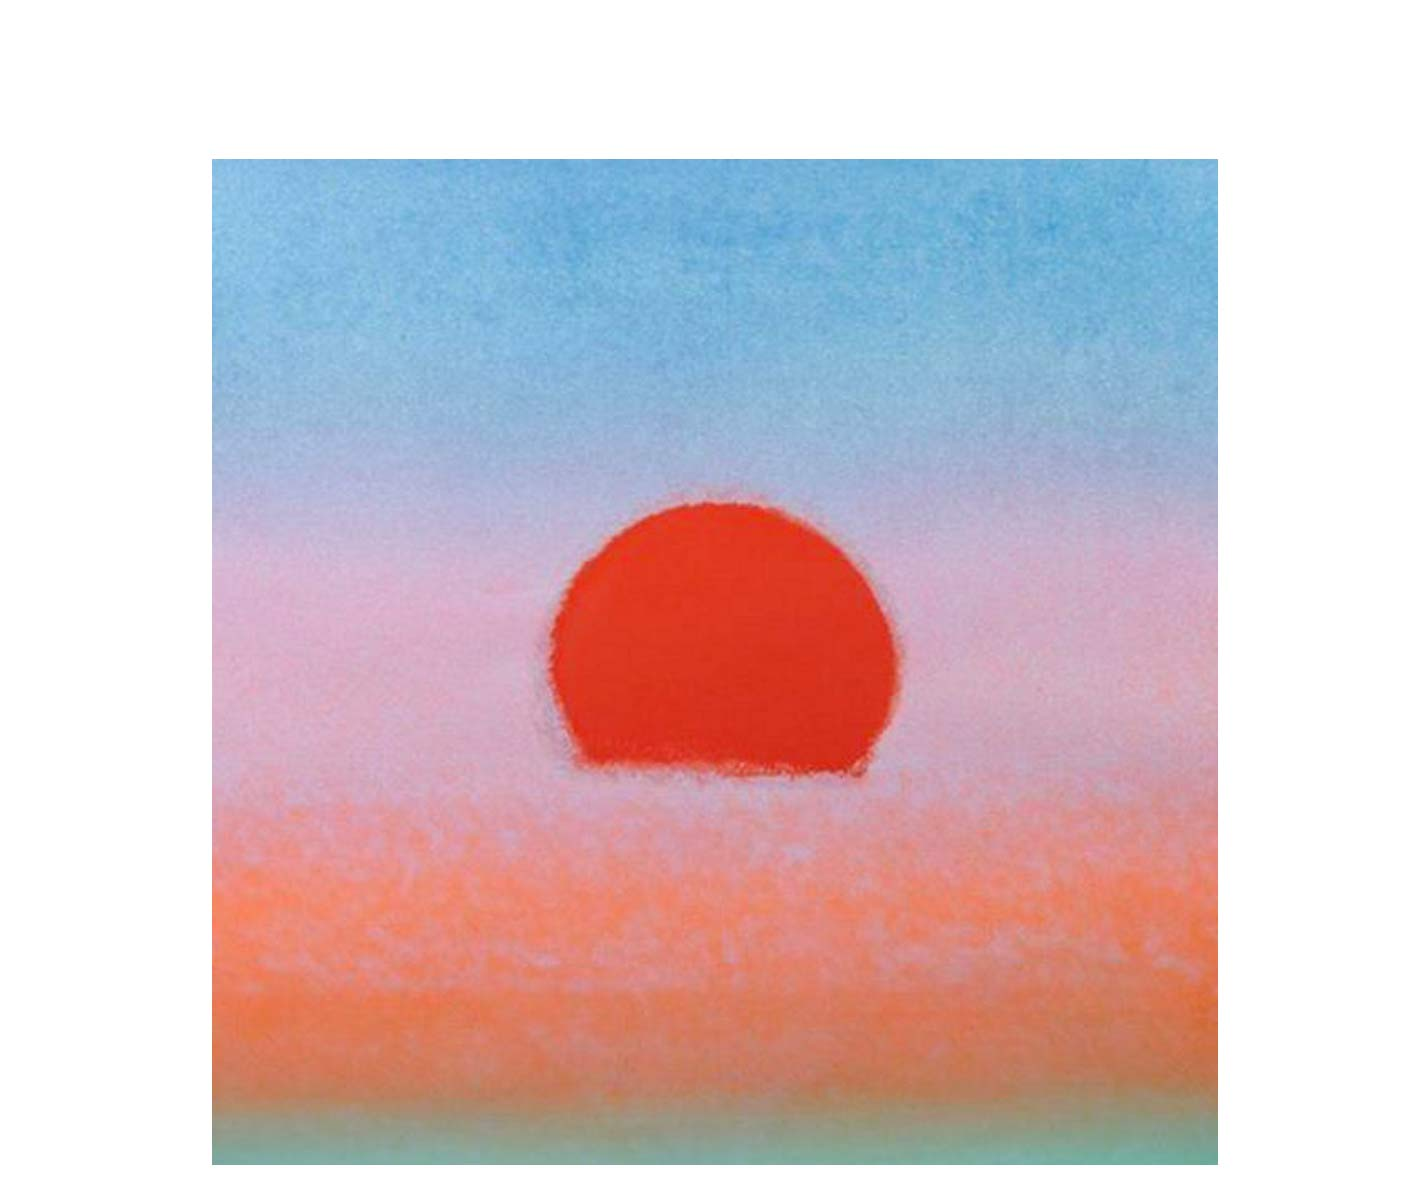 Andy Warhol, Sunset